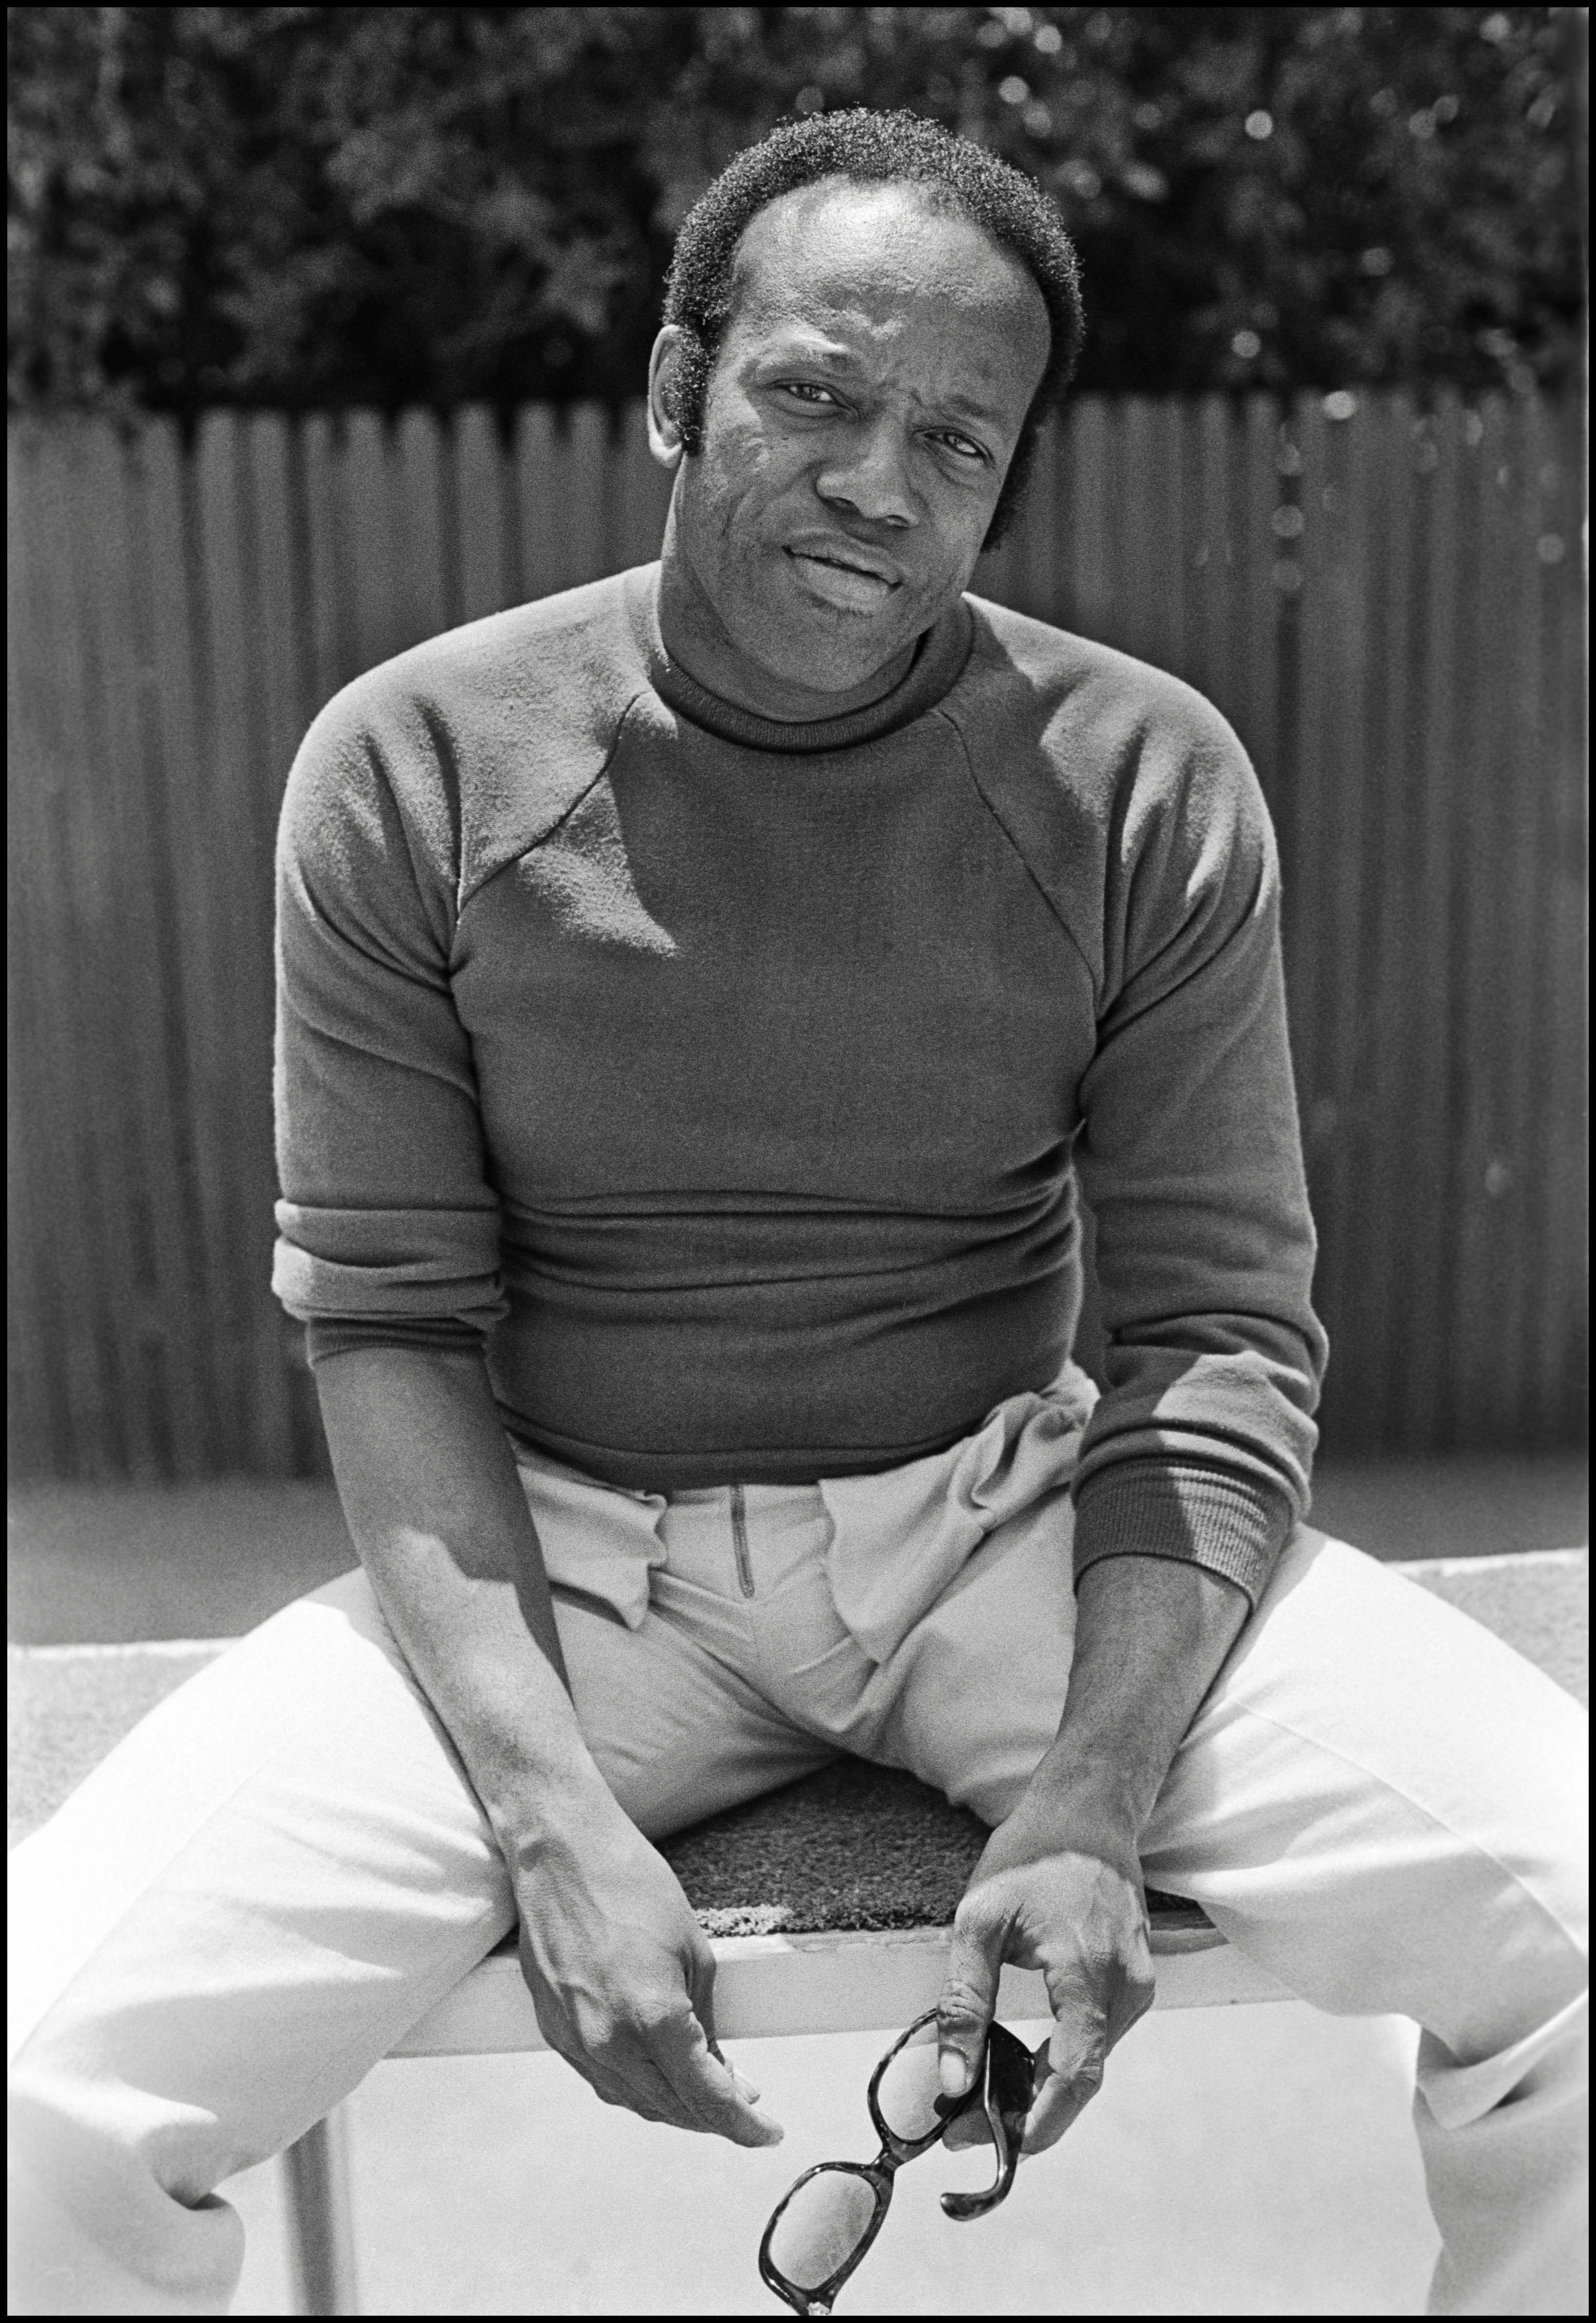 Portrait of Bobby Womack on June 19, 1985 | Photo: Getty Images